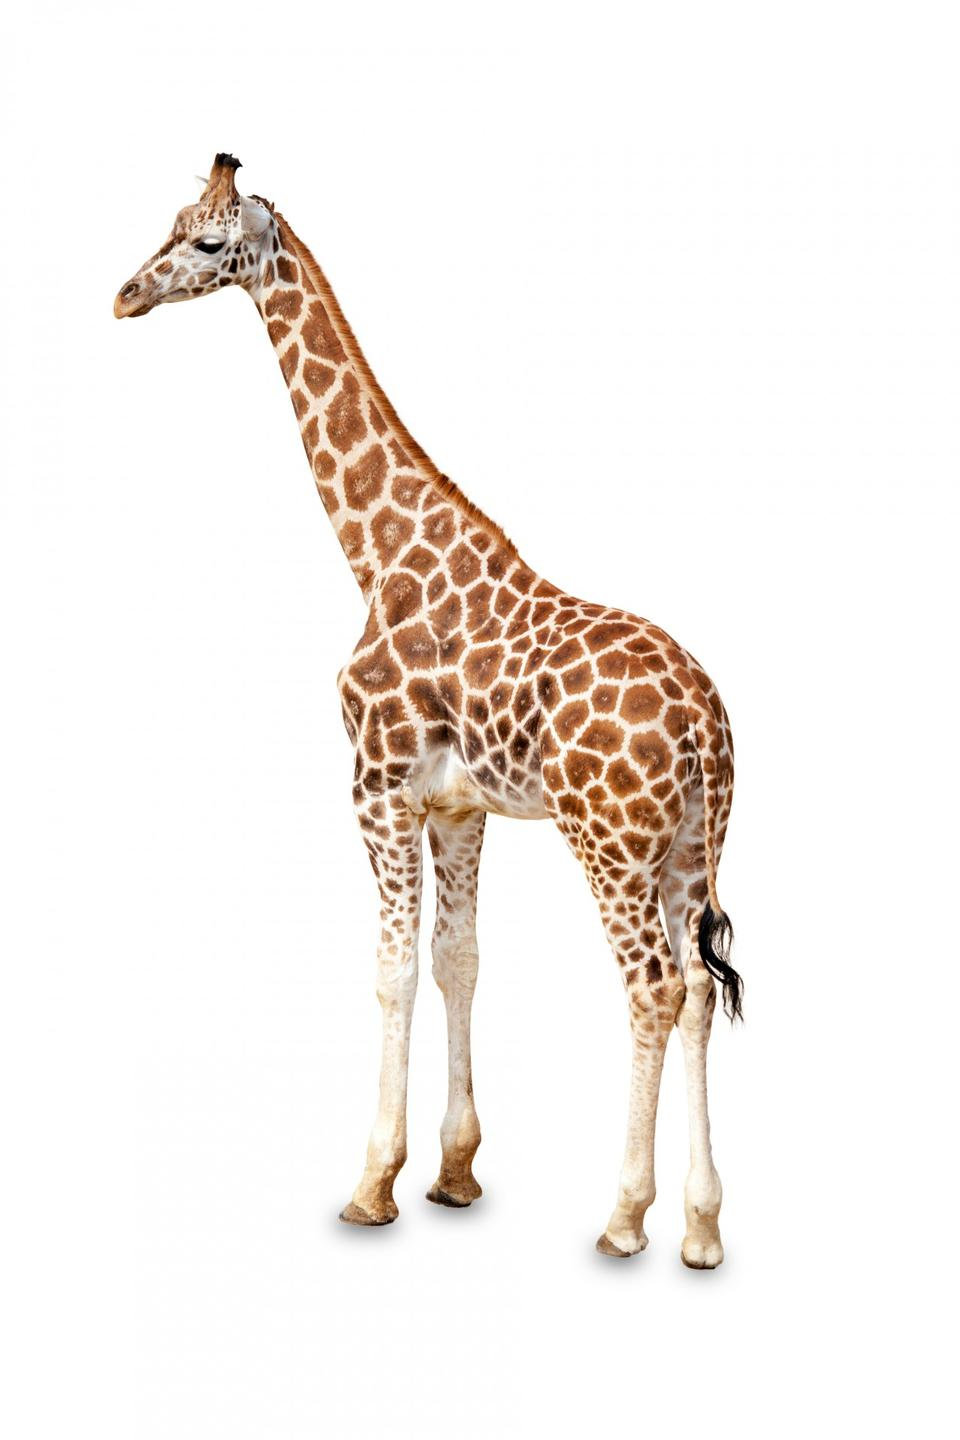 Free one giraffe is isolated on white background